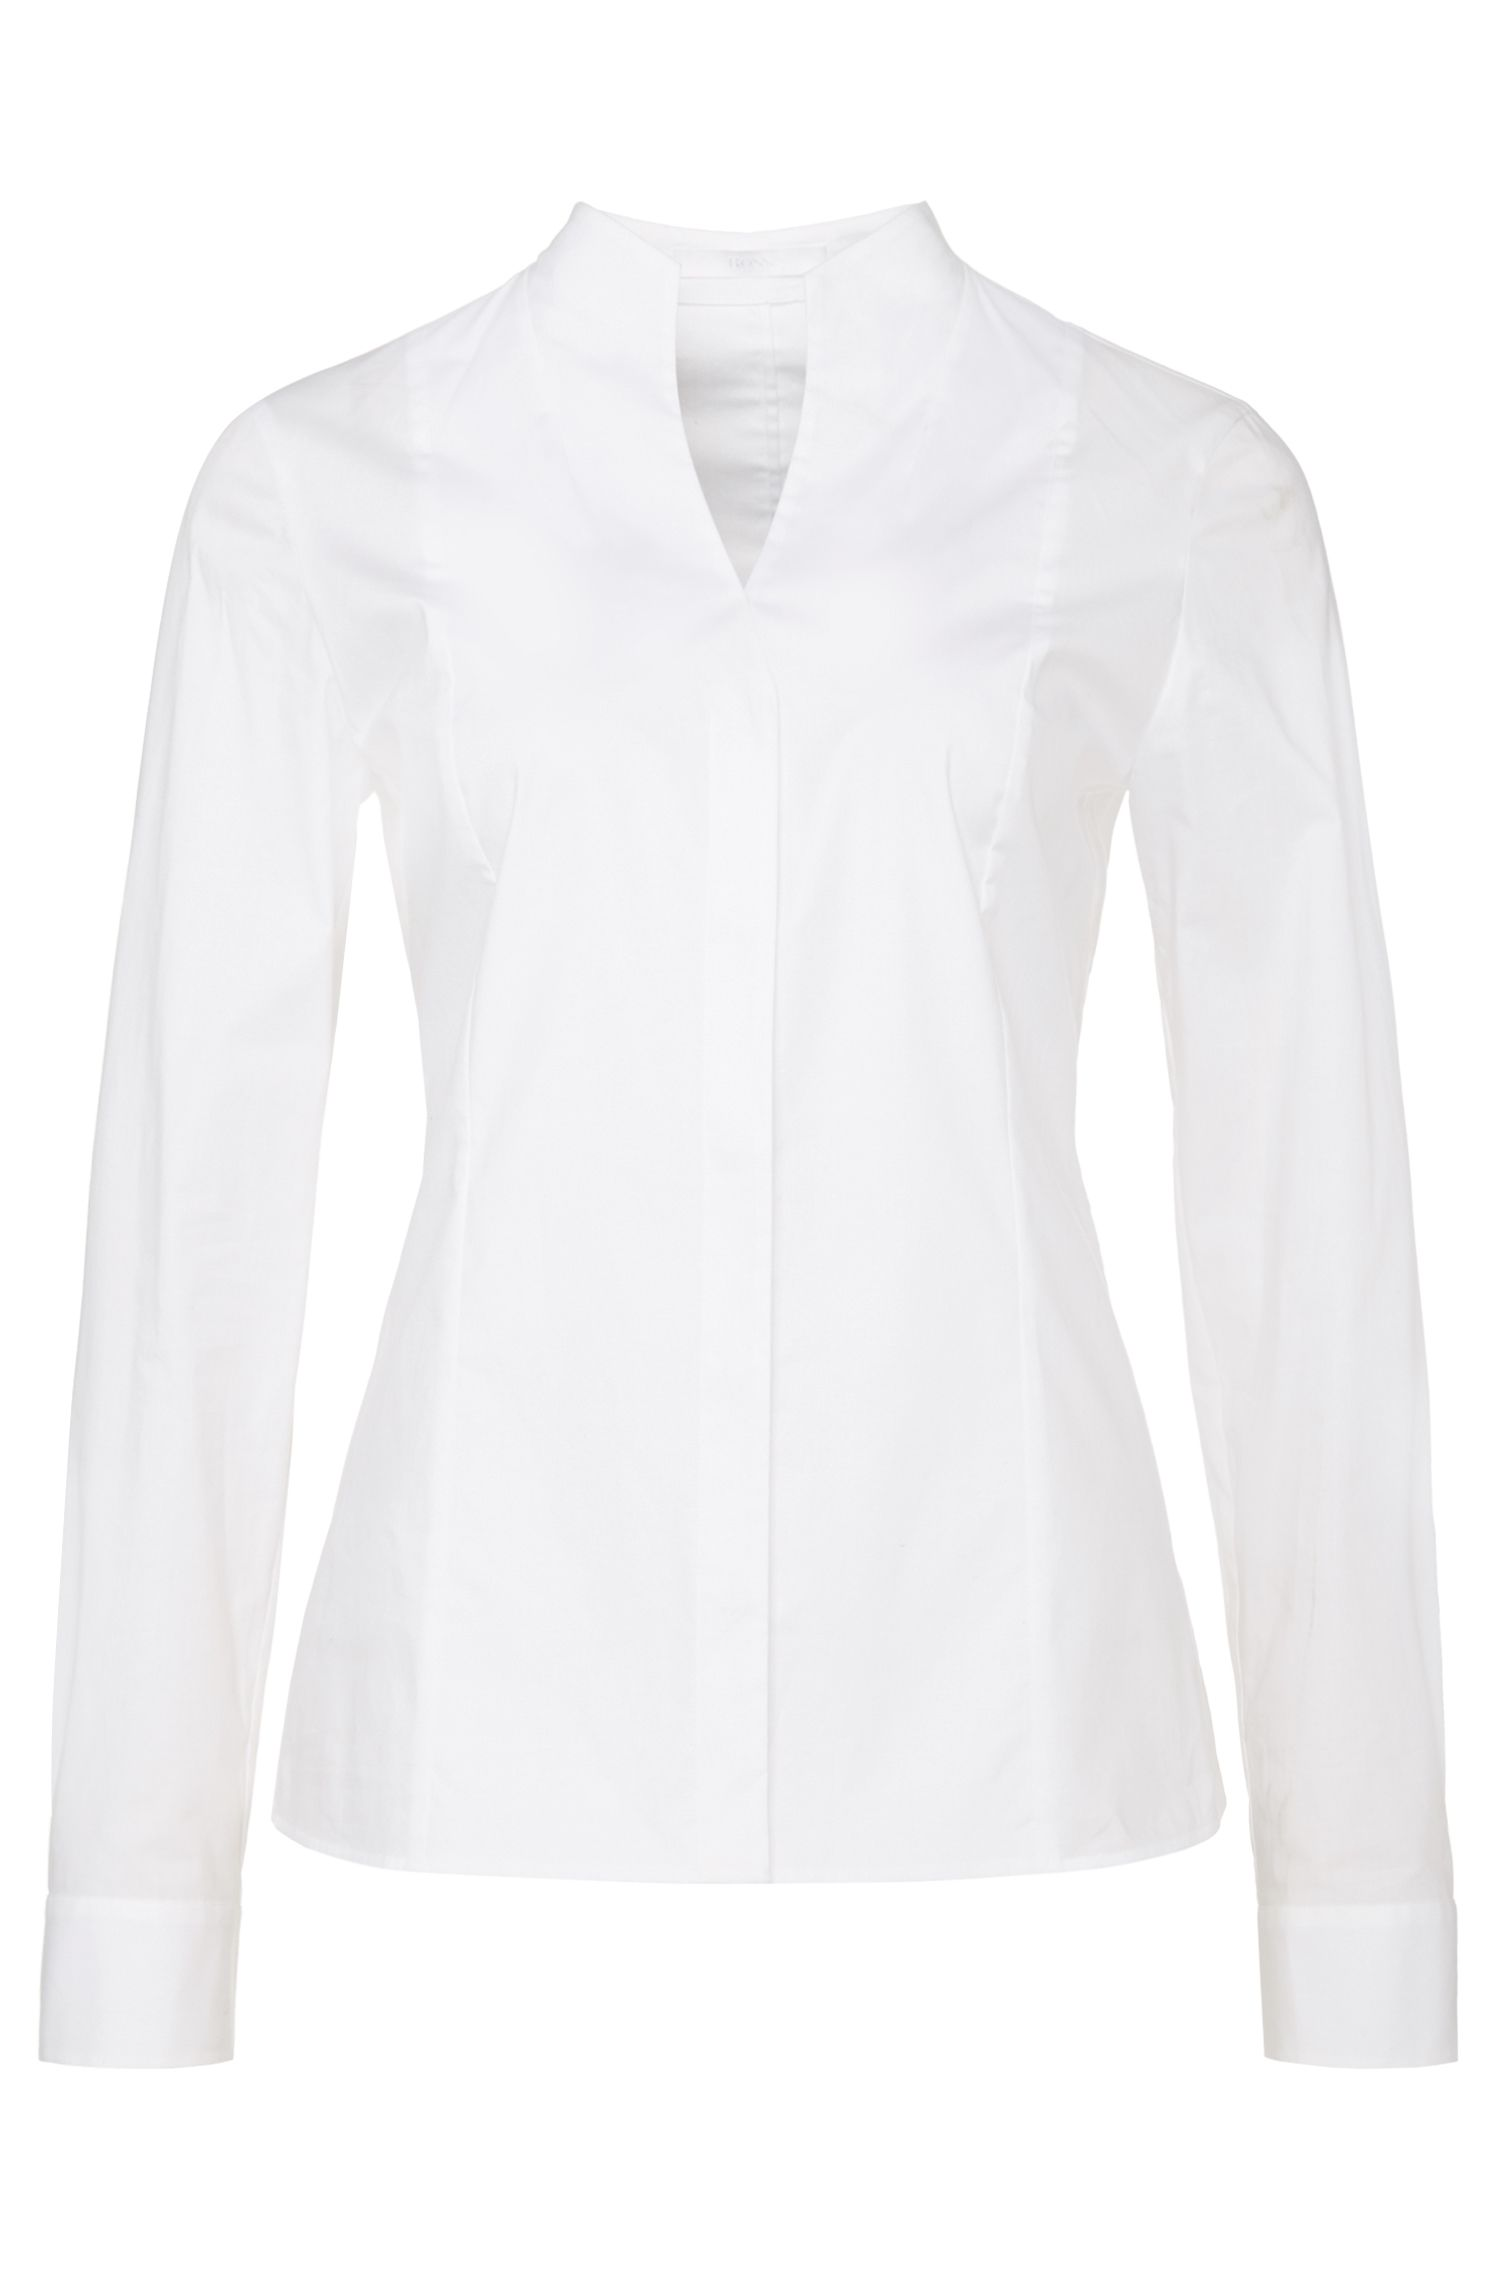 'Barisa' | Stretch Cotton Poplin Button Down Blouse